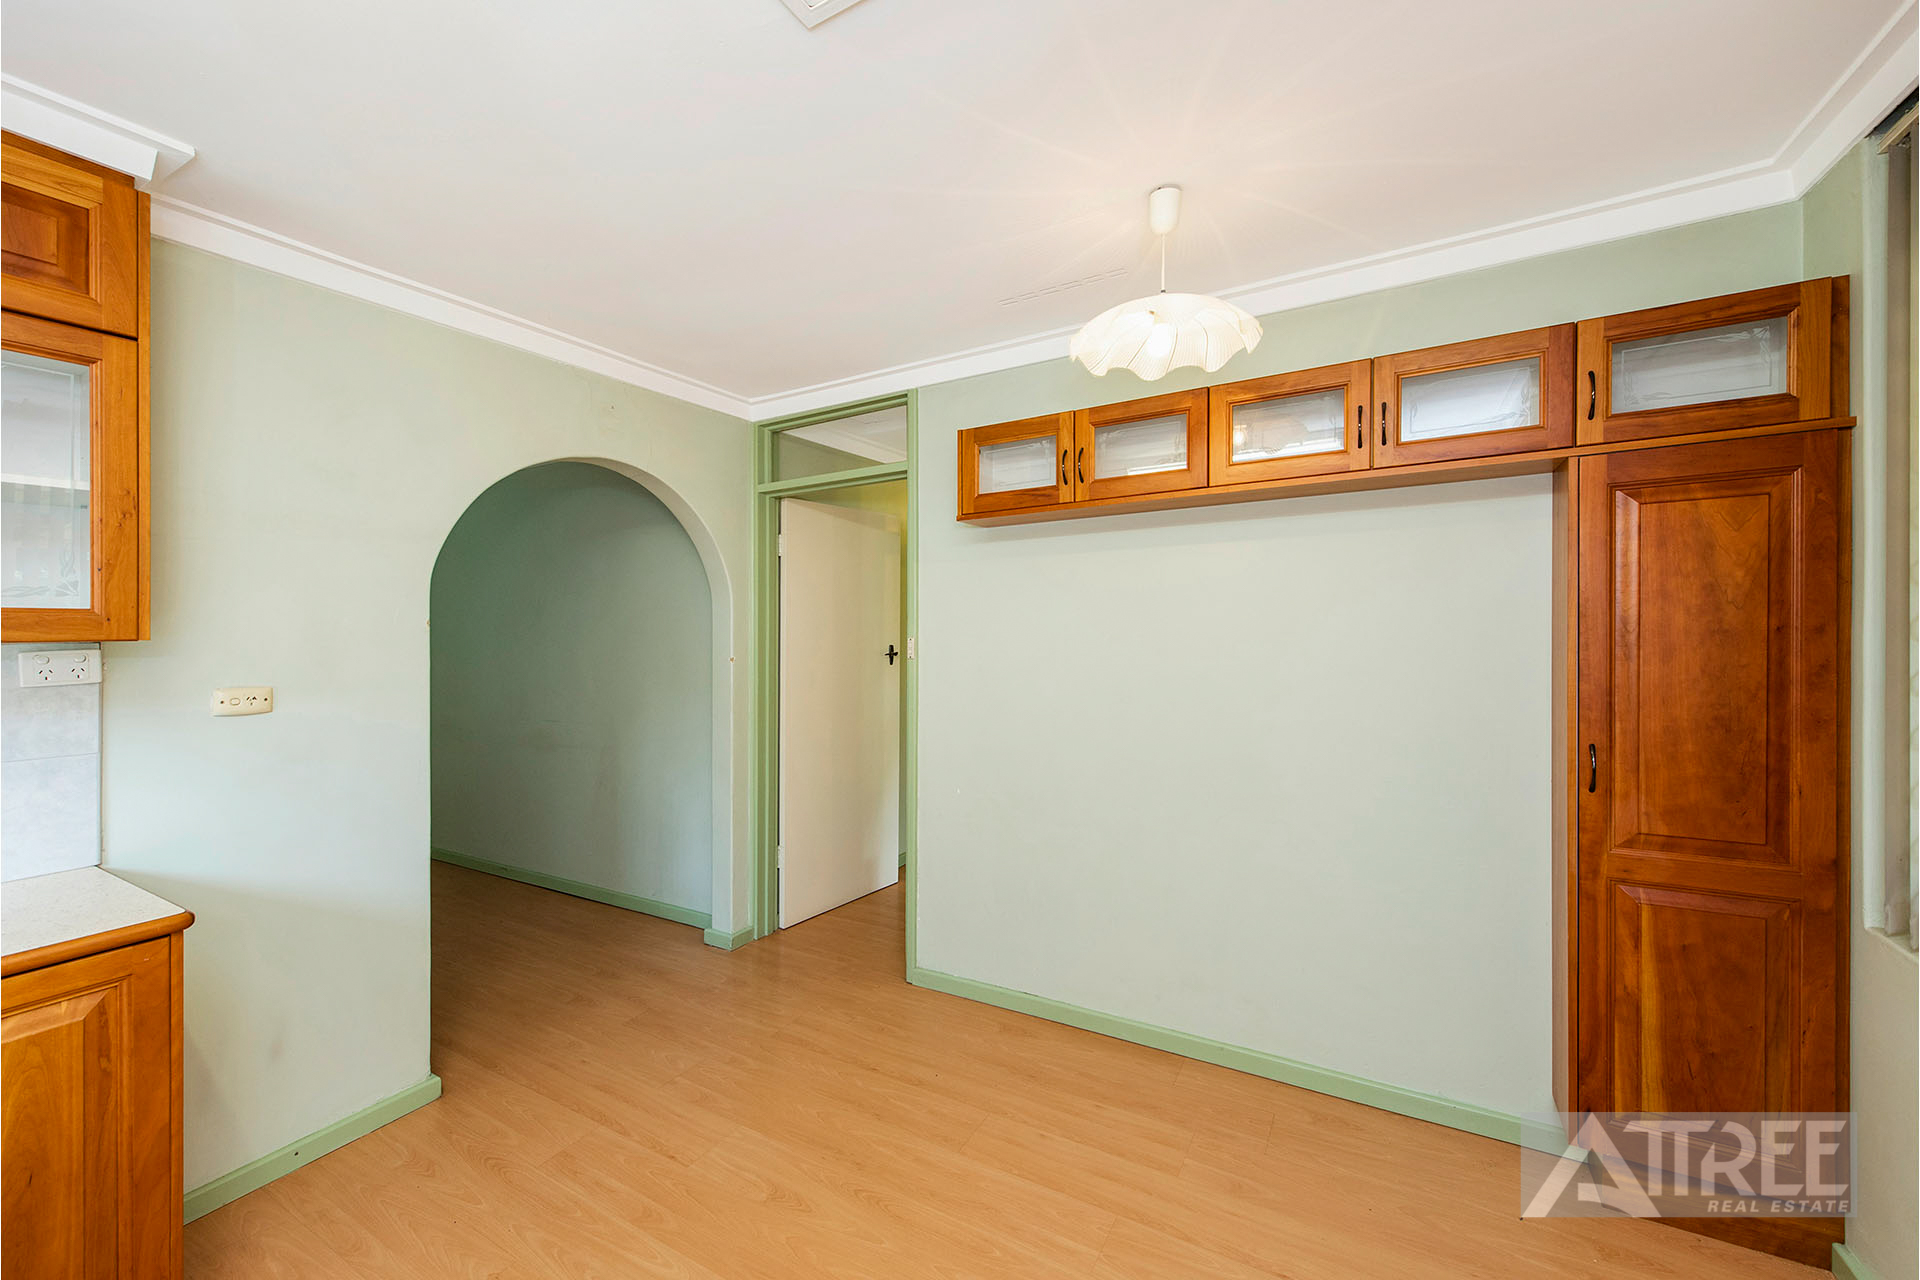 Property for sale in GOSNELLS, 18 Belyea Street : Attree Real Estate